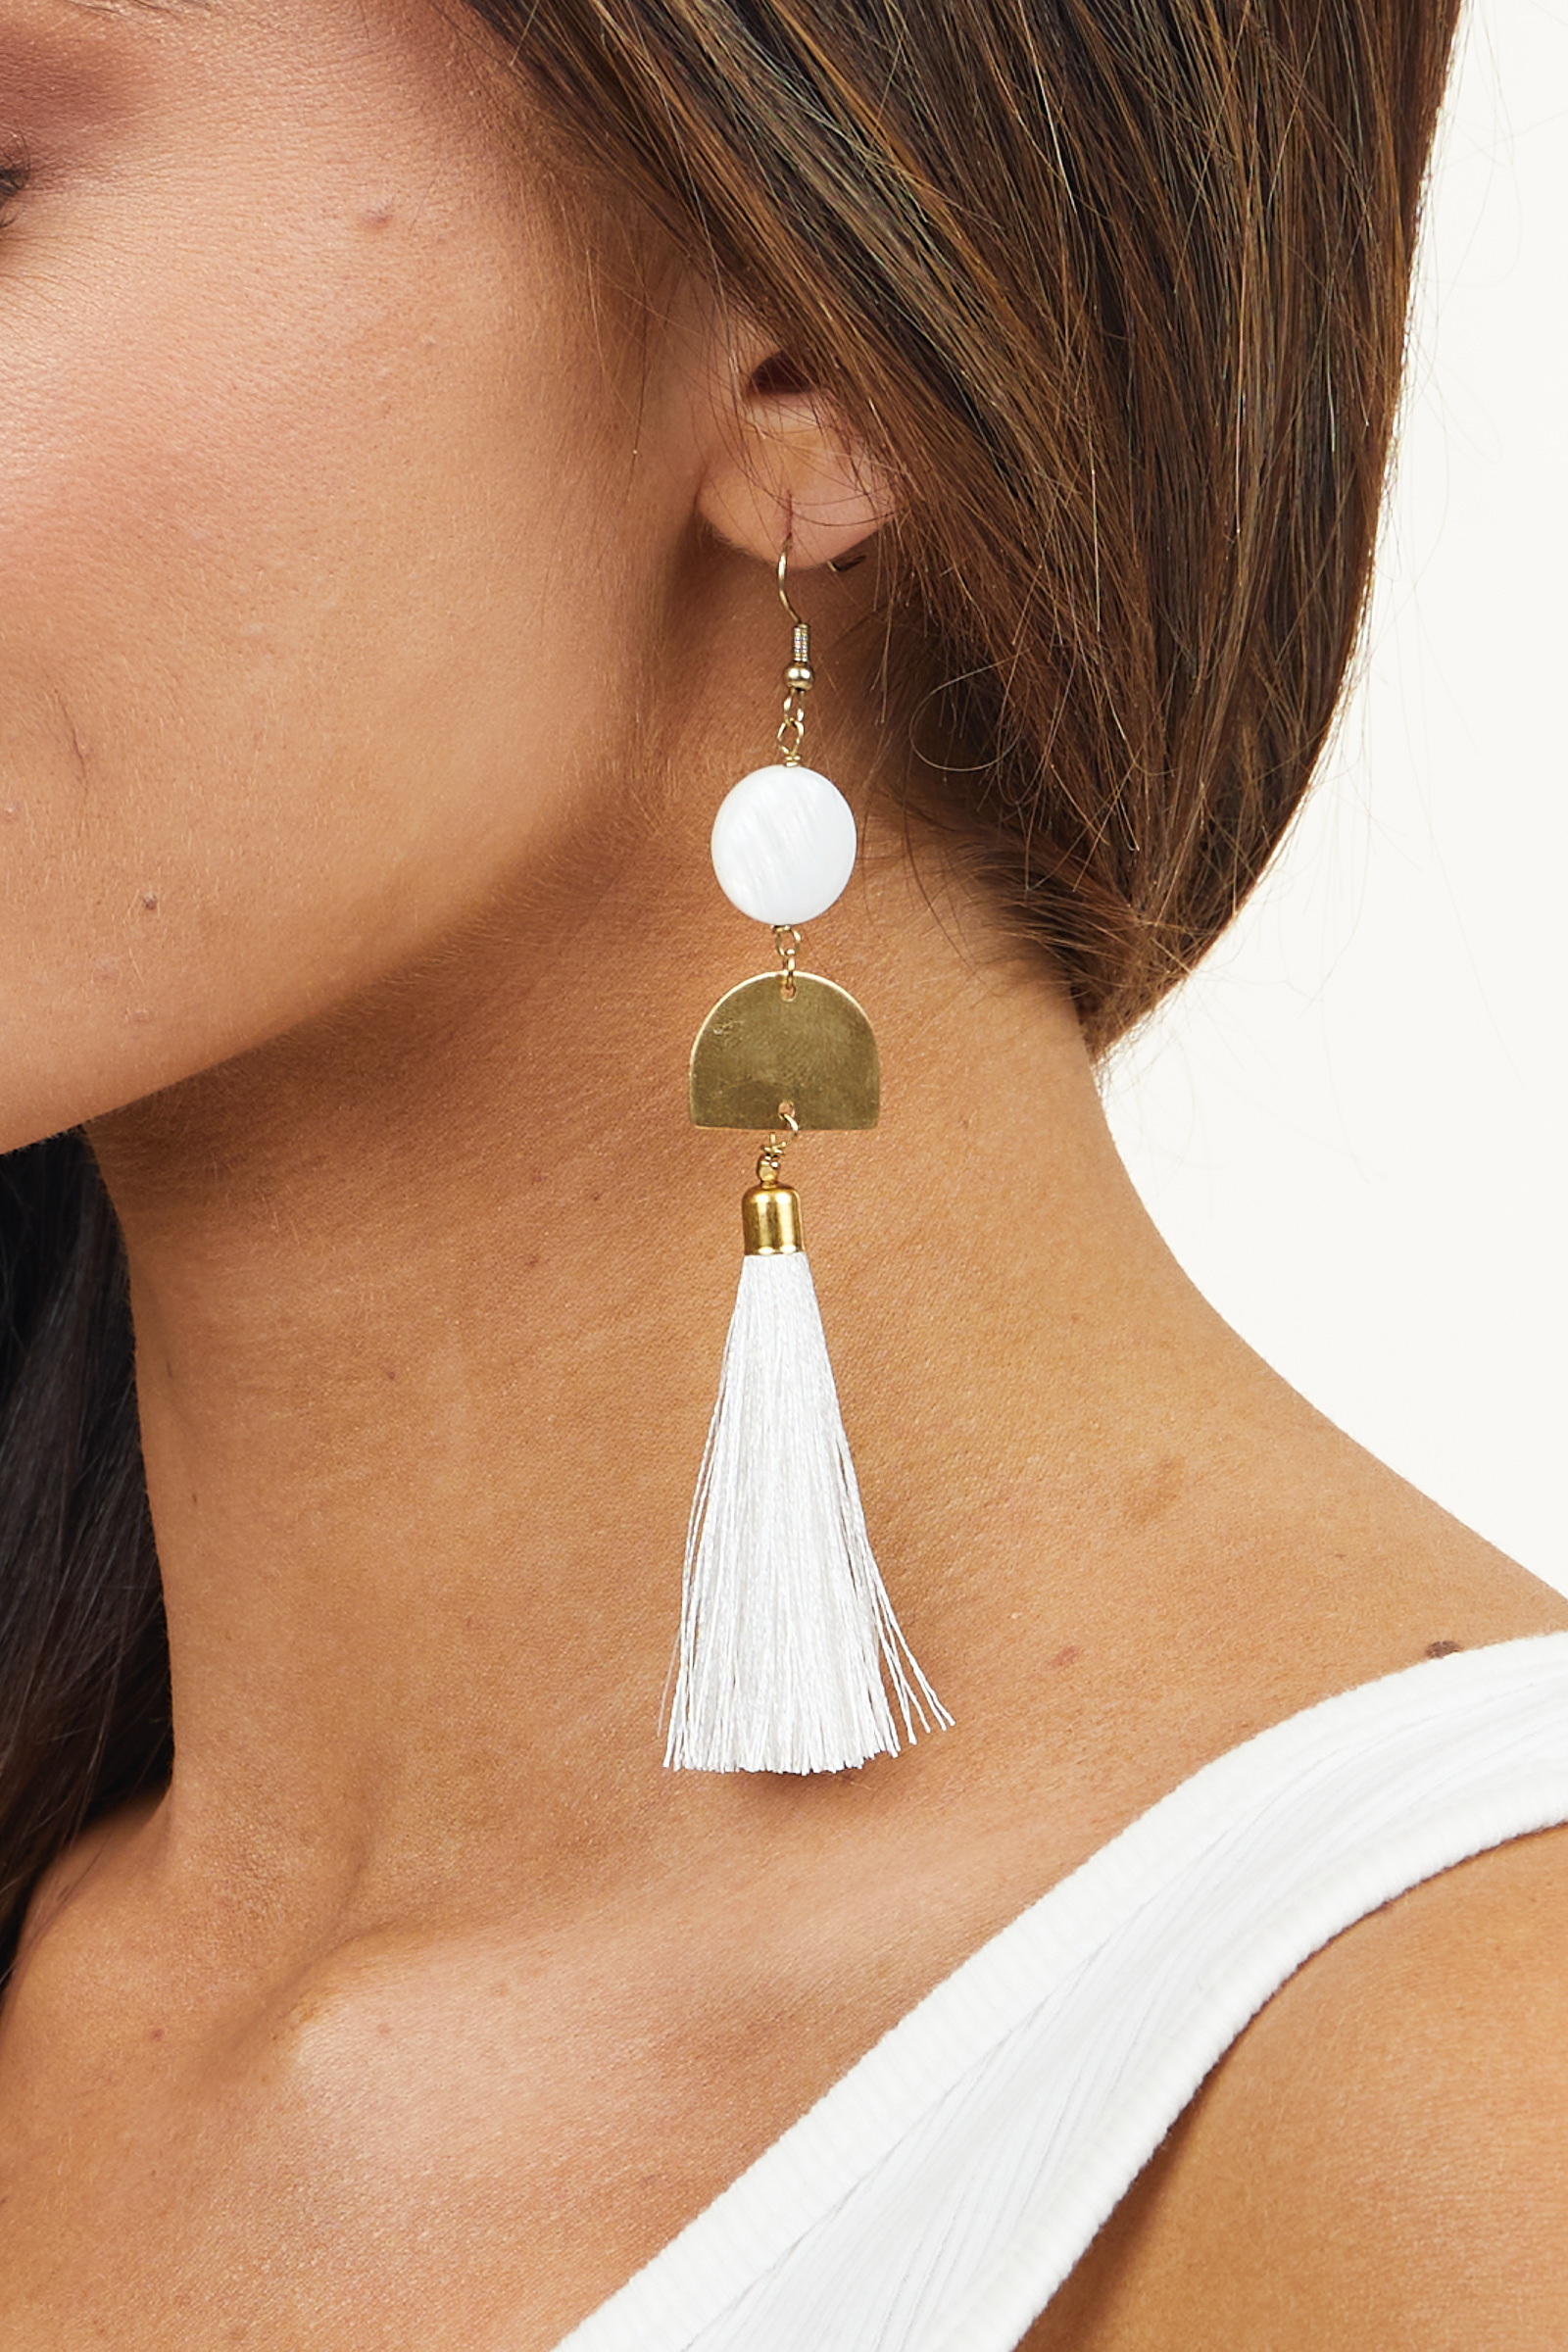 Gold and White Geometric Dangle Earrings with Tassel Detail